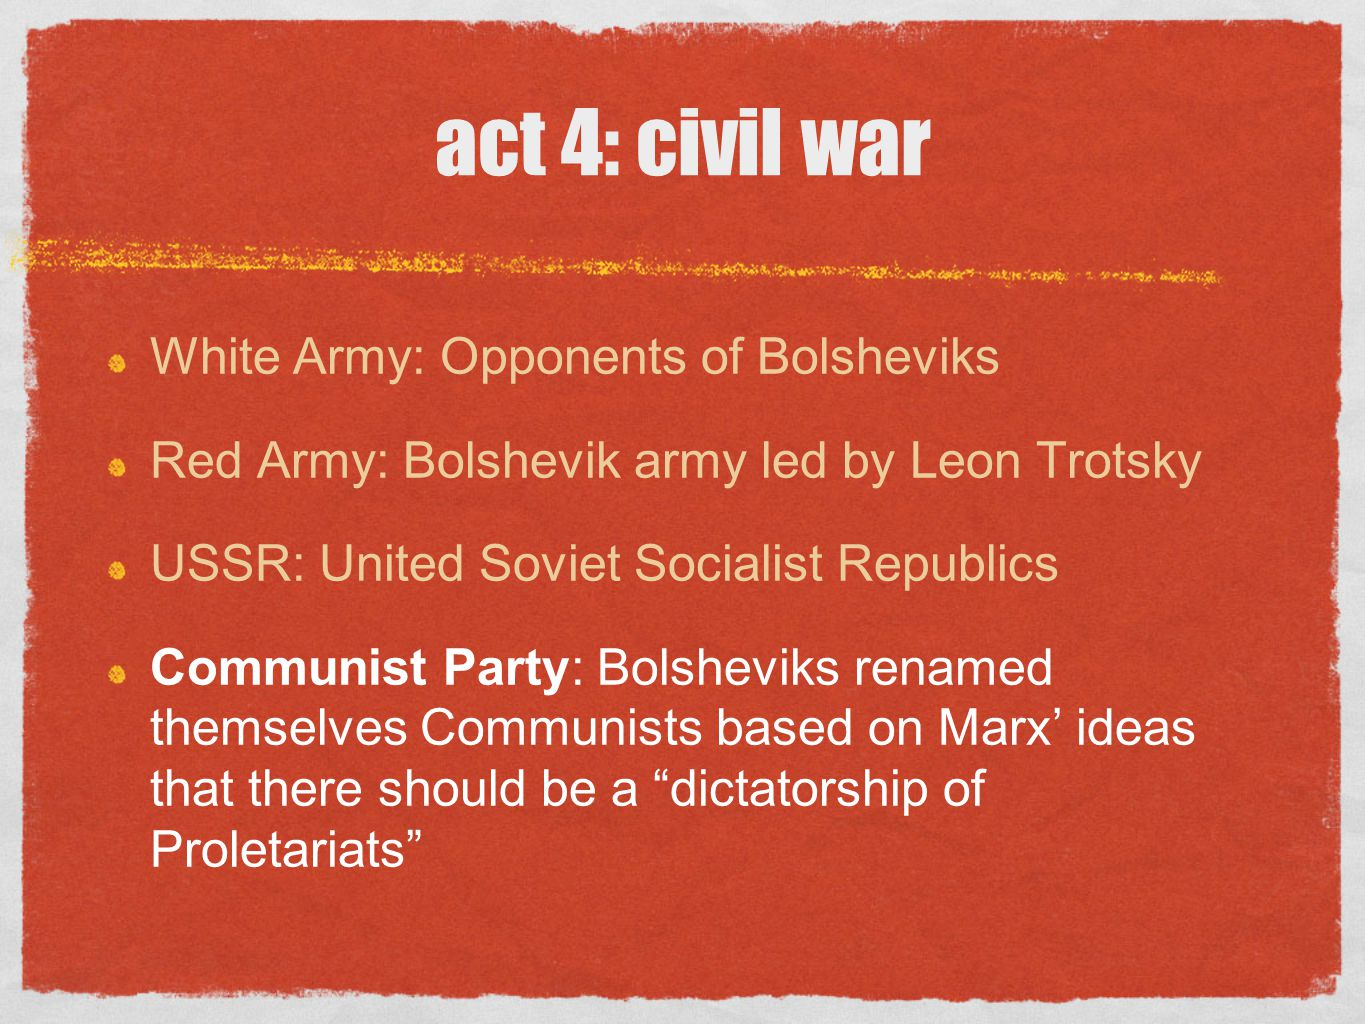 act 4: civil war White Army: Opponents of Bolsheviks